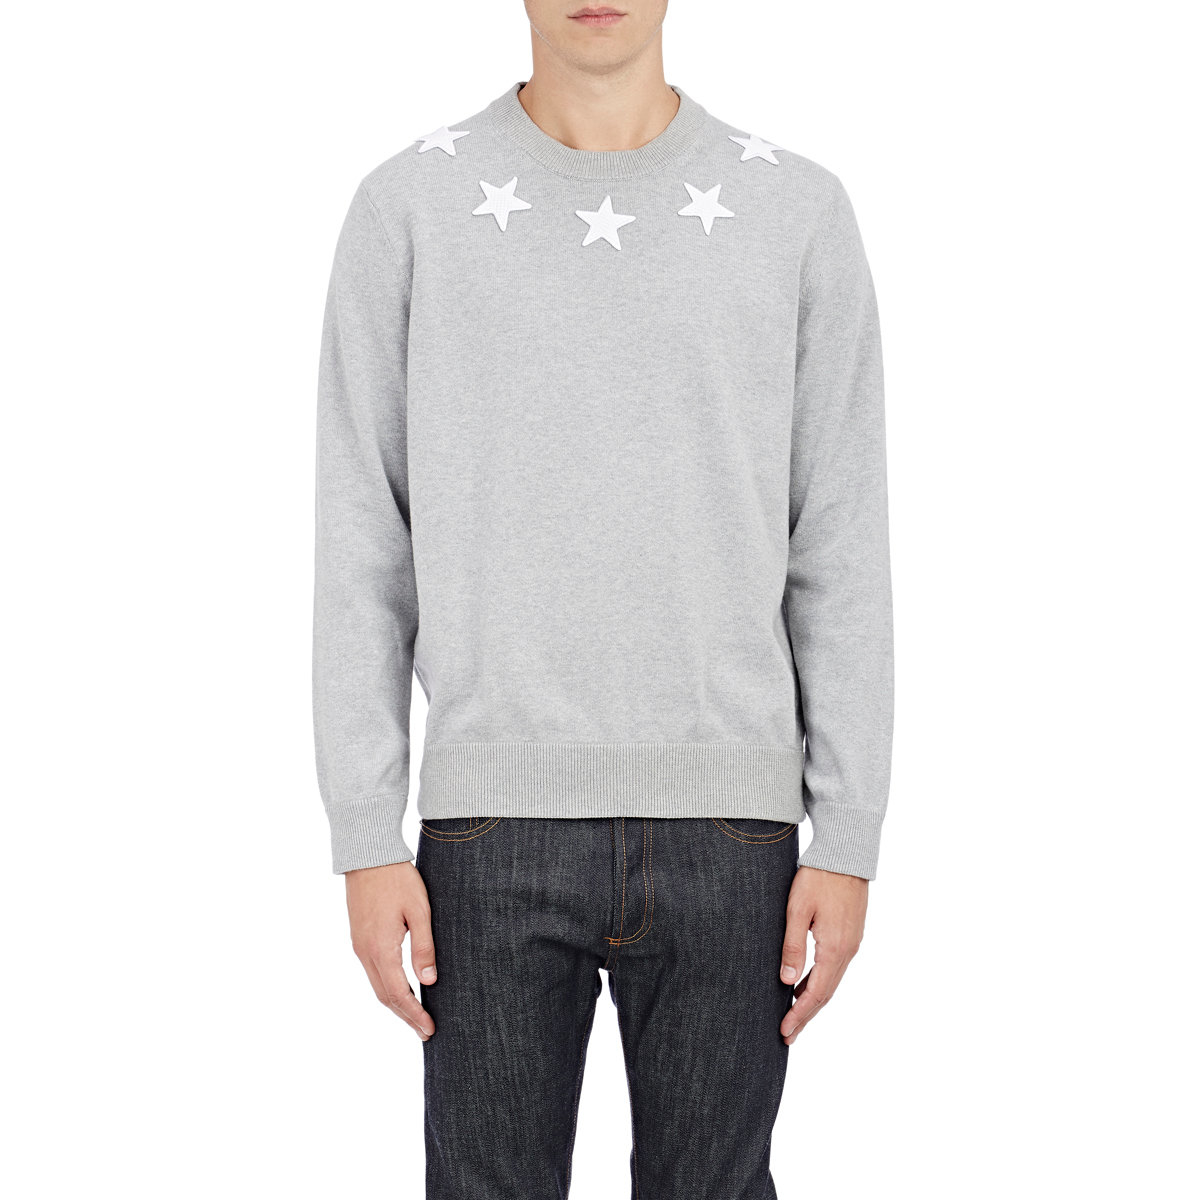 givenchy varsity star embroidered sweater in gray for men. Black Bedroom Furniture Sets. Home Design Ideas